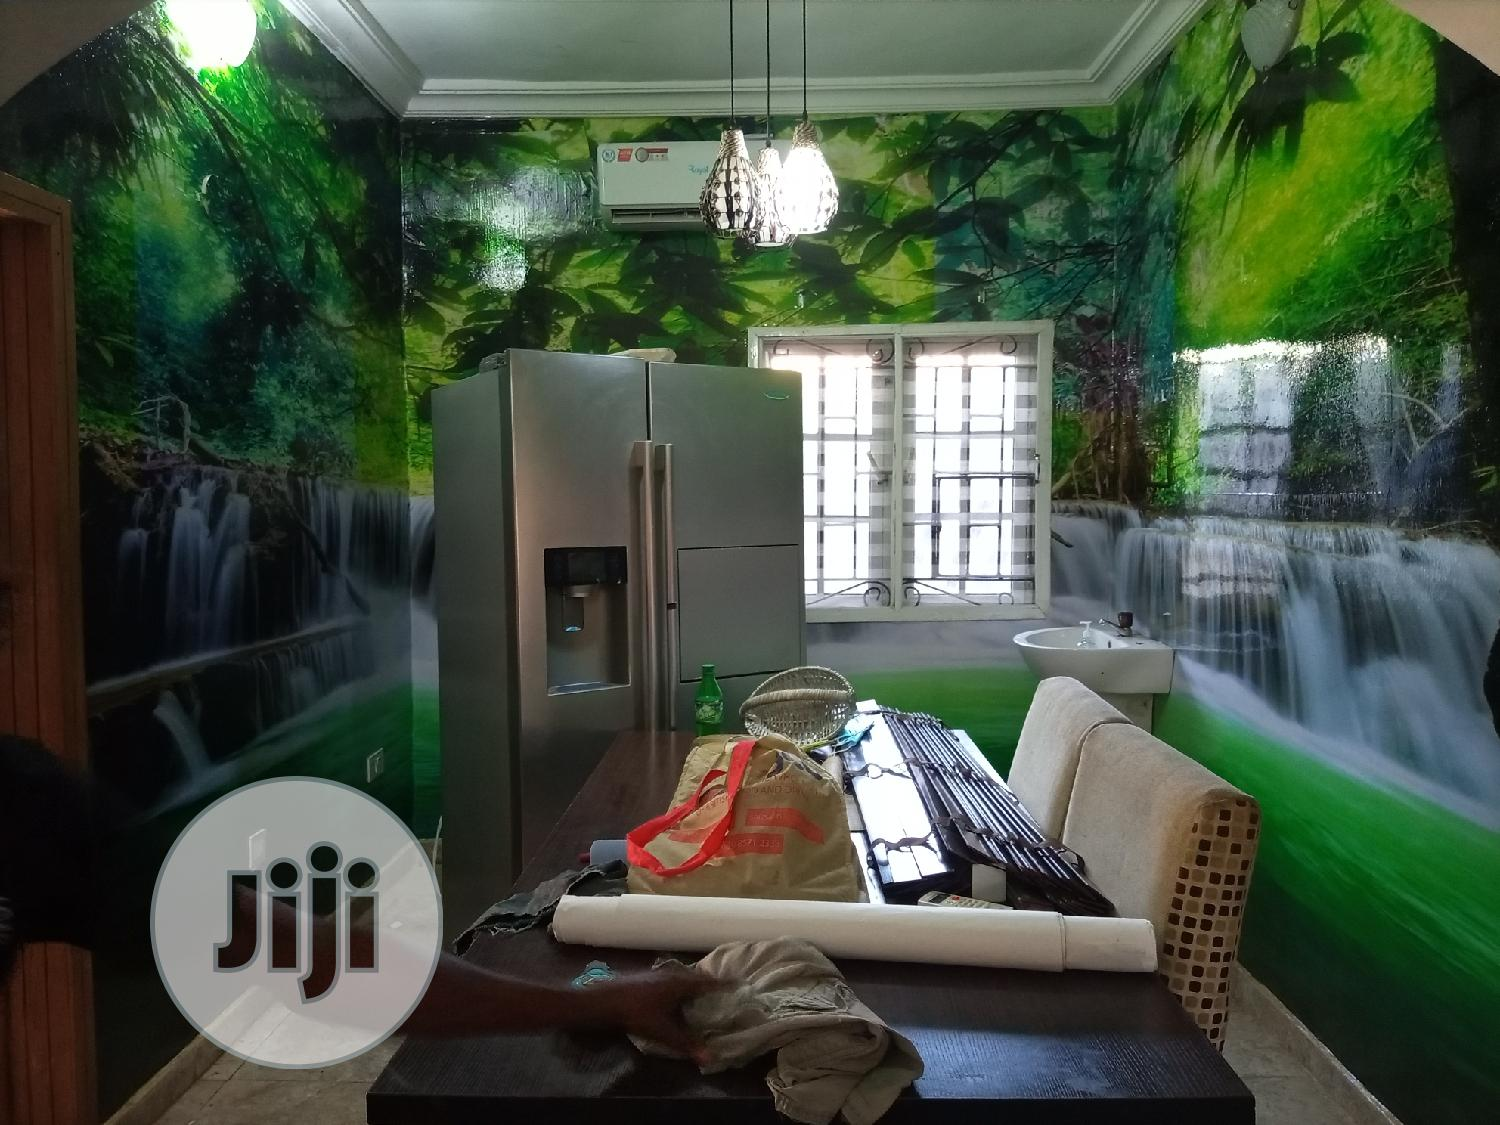 3D Epoxy Floor,Wall And Strech Ceiling | Legal Services for sale in Ijebu Ode, Ogun State, Nigeria